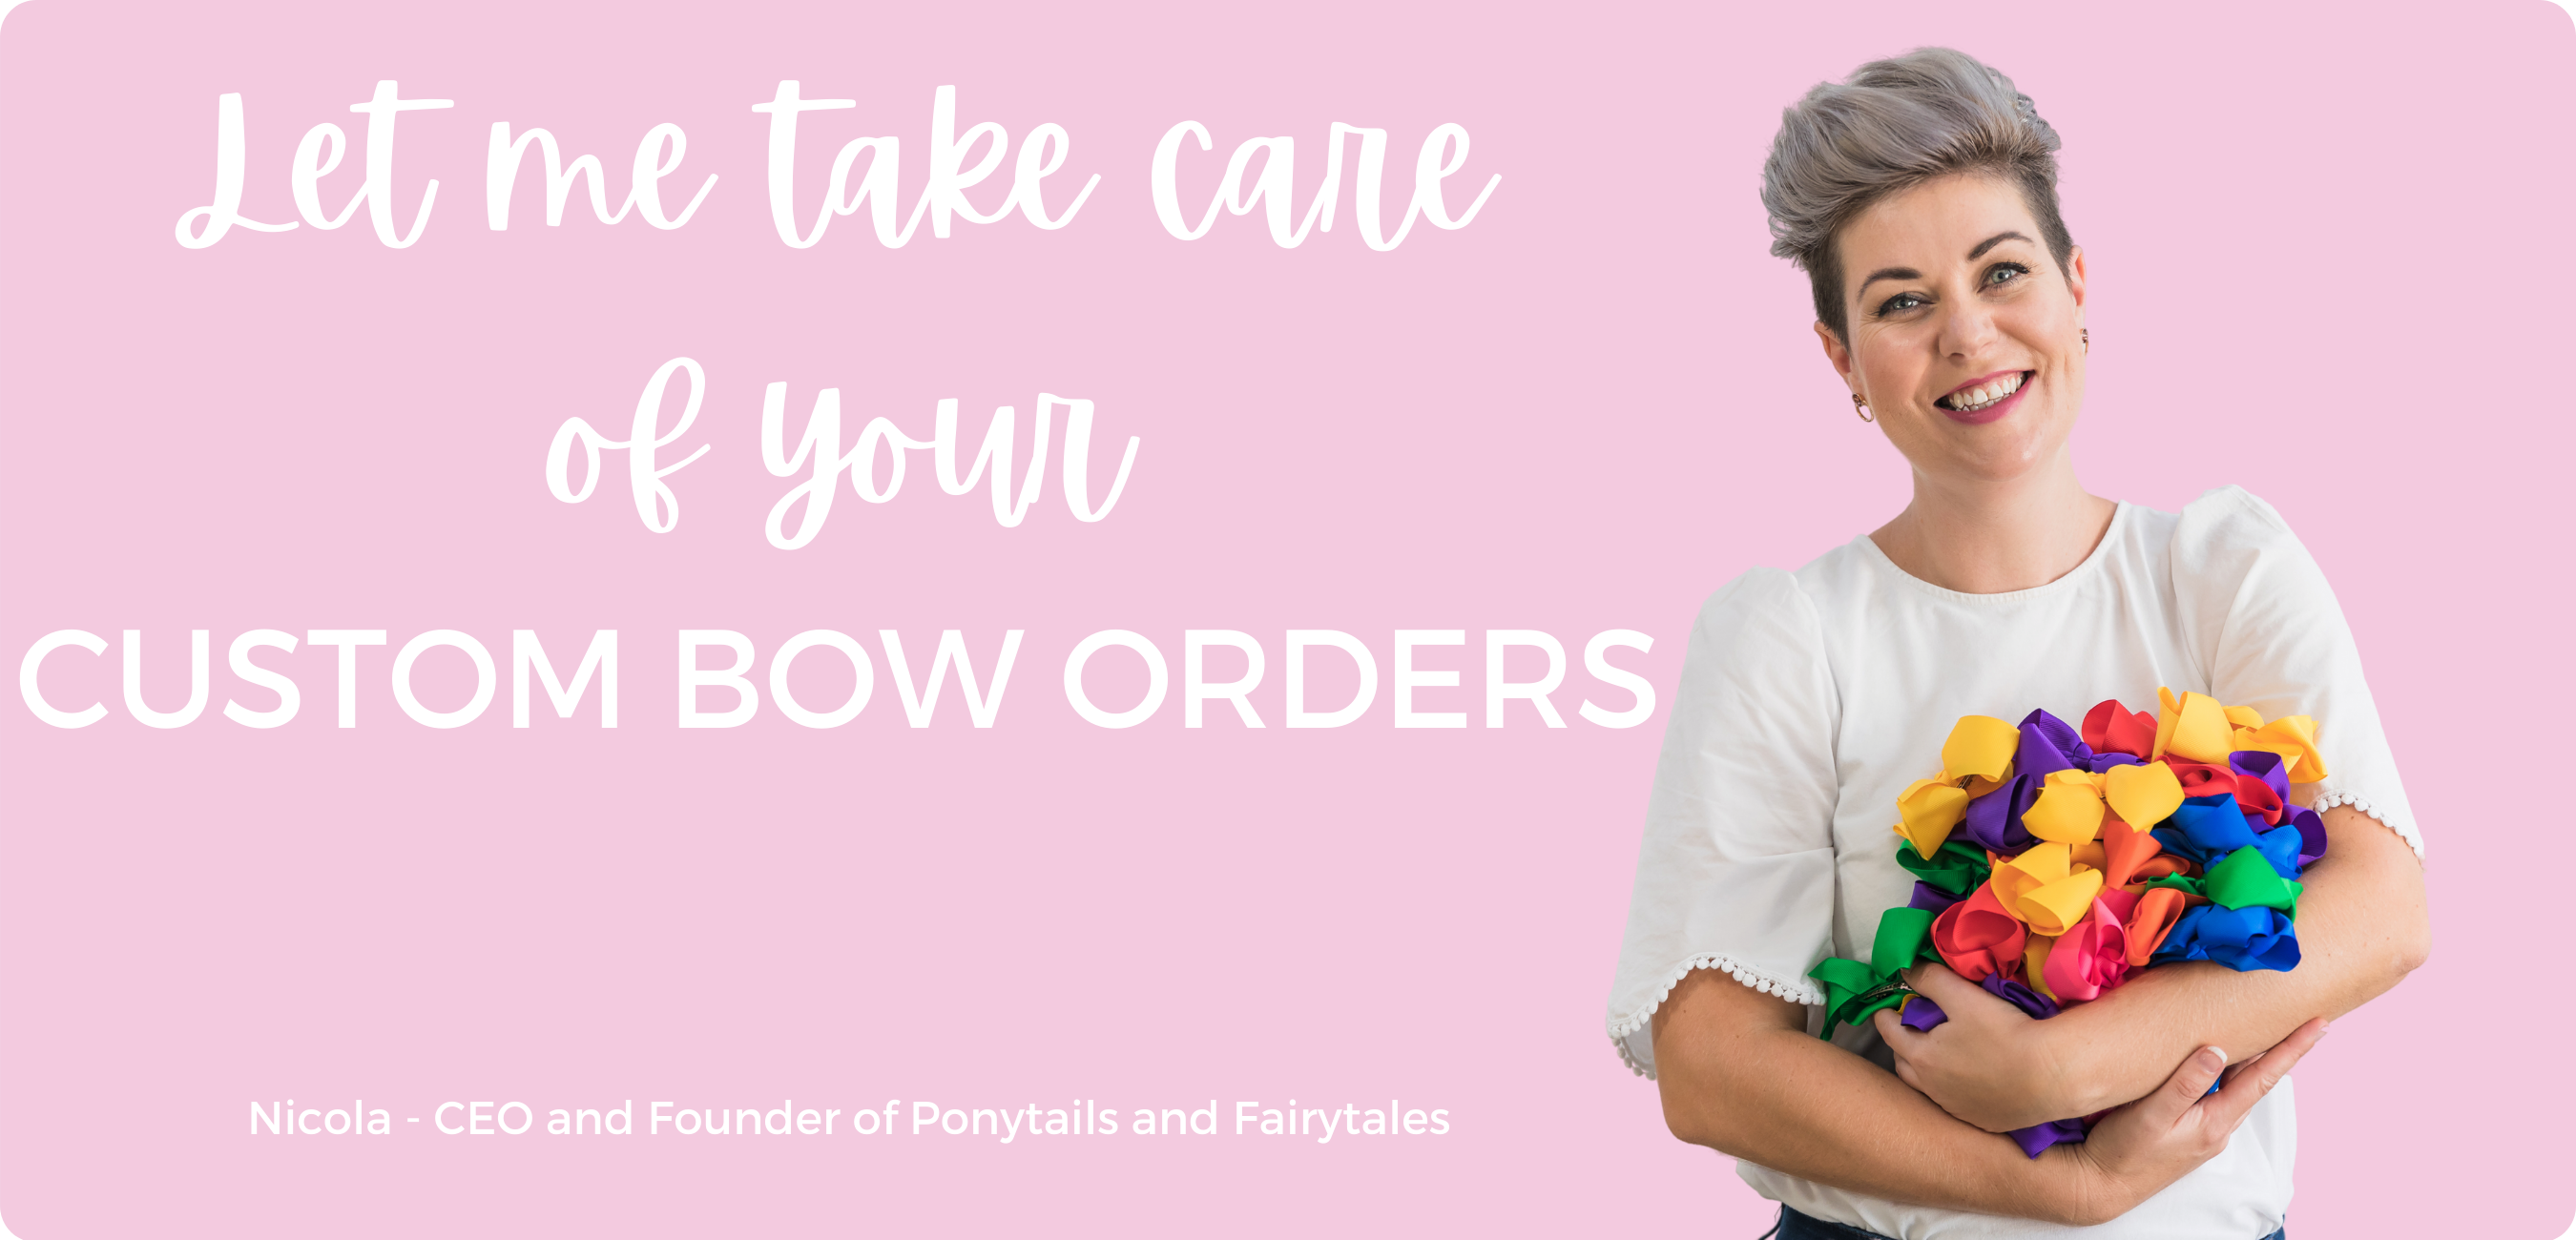 Let me take care of your custom bow orders - Nicola from Ponytails and Fairytales with an armful of rainbow bows